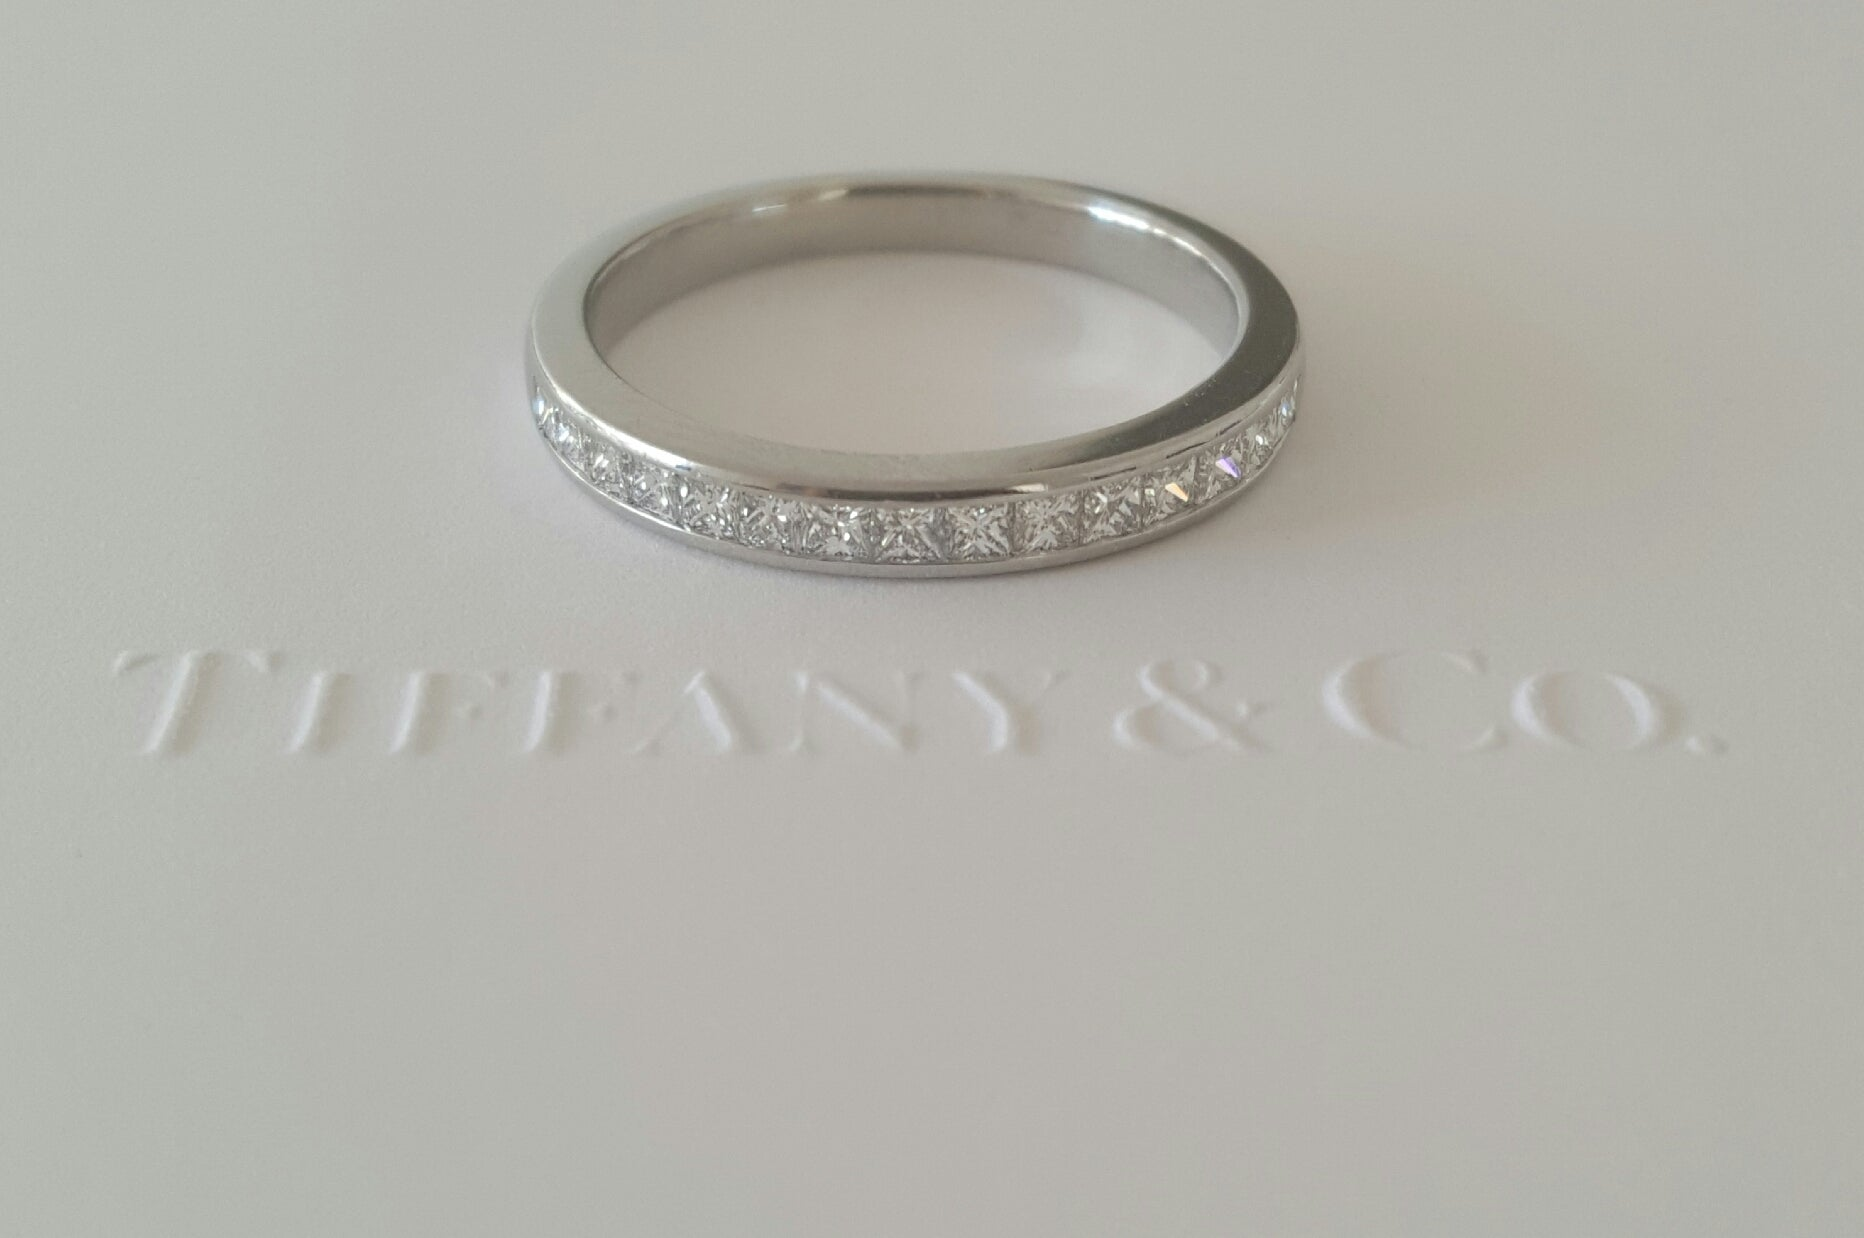 Tiffany & Co. 0.39tcw Princess Cut Diamond Half Eternity Band PT950 Paperwork